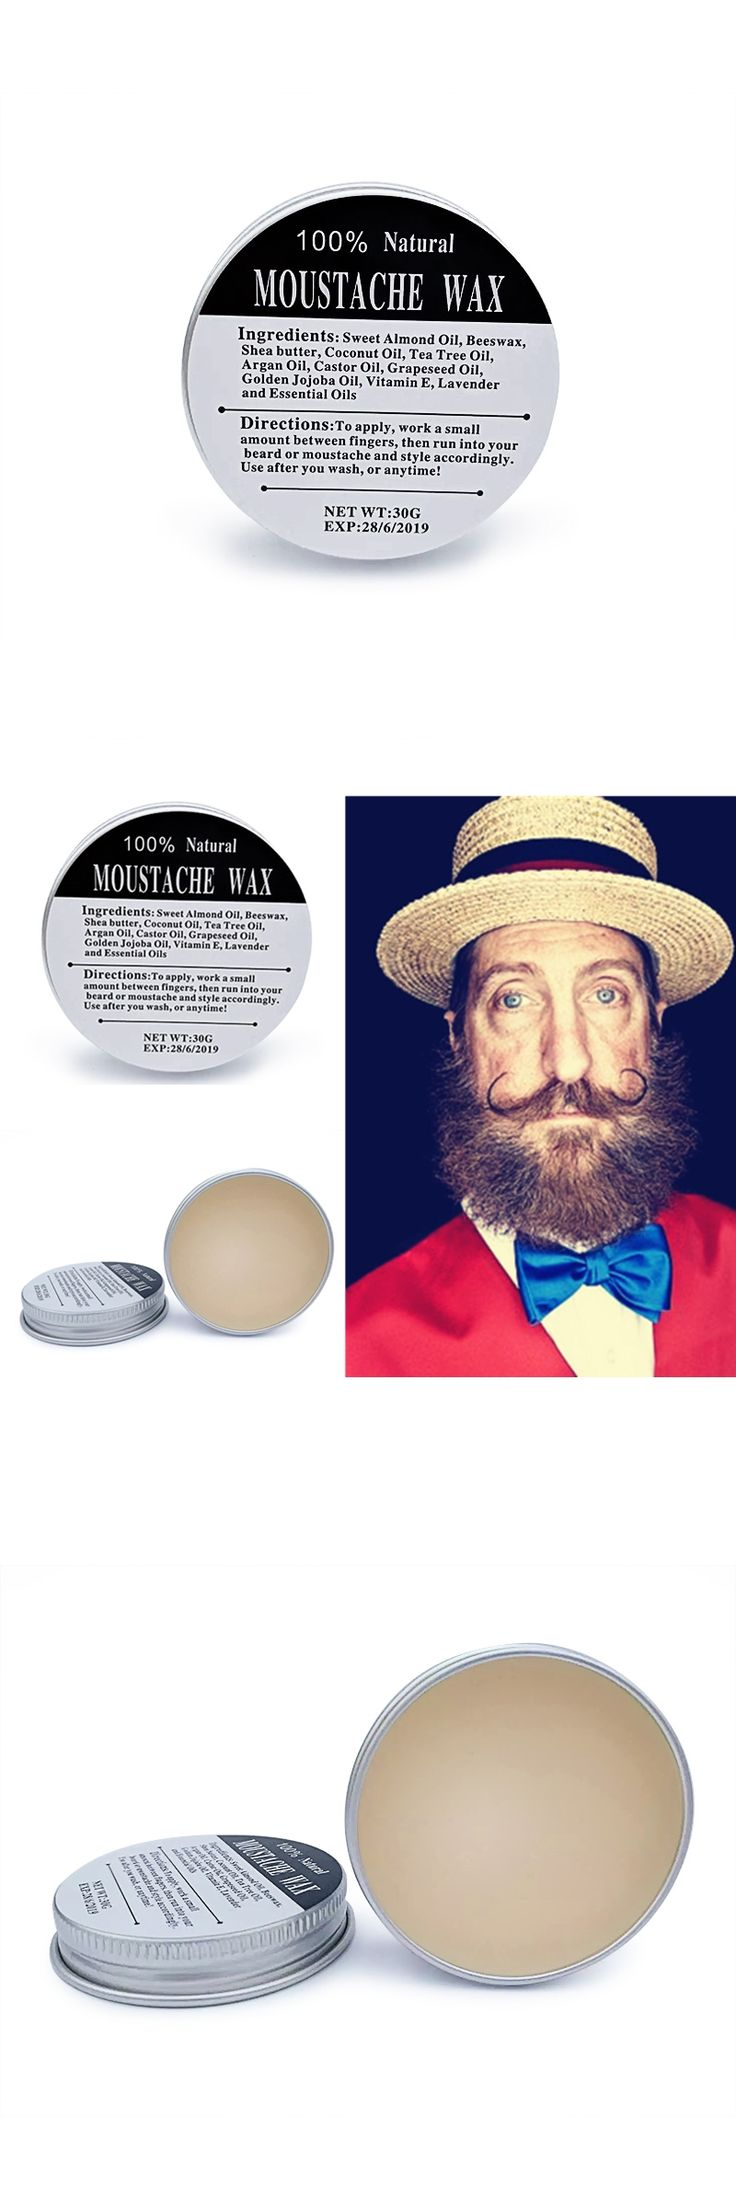 Preboily Beard Wax For Beard Styling Moustache Wax Beard Oil Conditioner Leave in Styling Moisturizing Smoothing Effect 30G